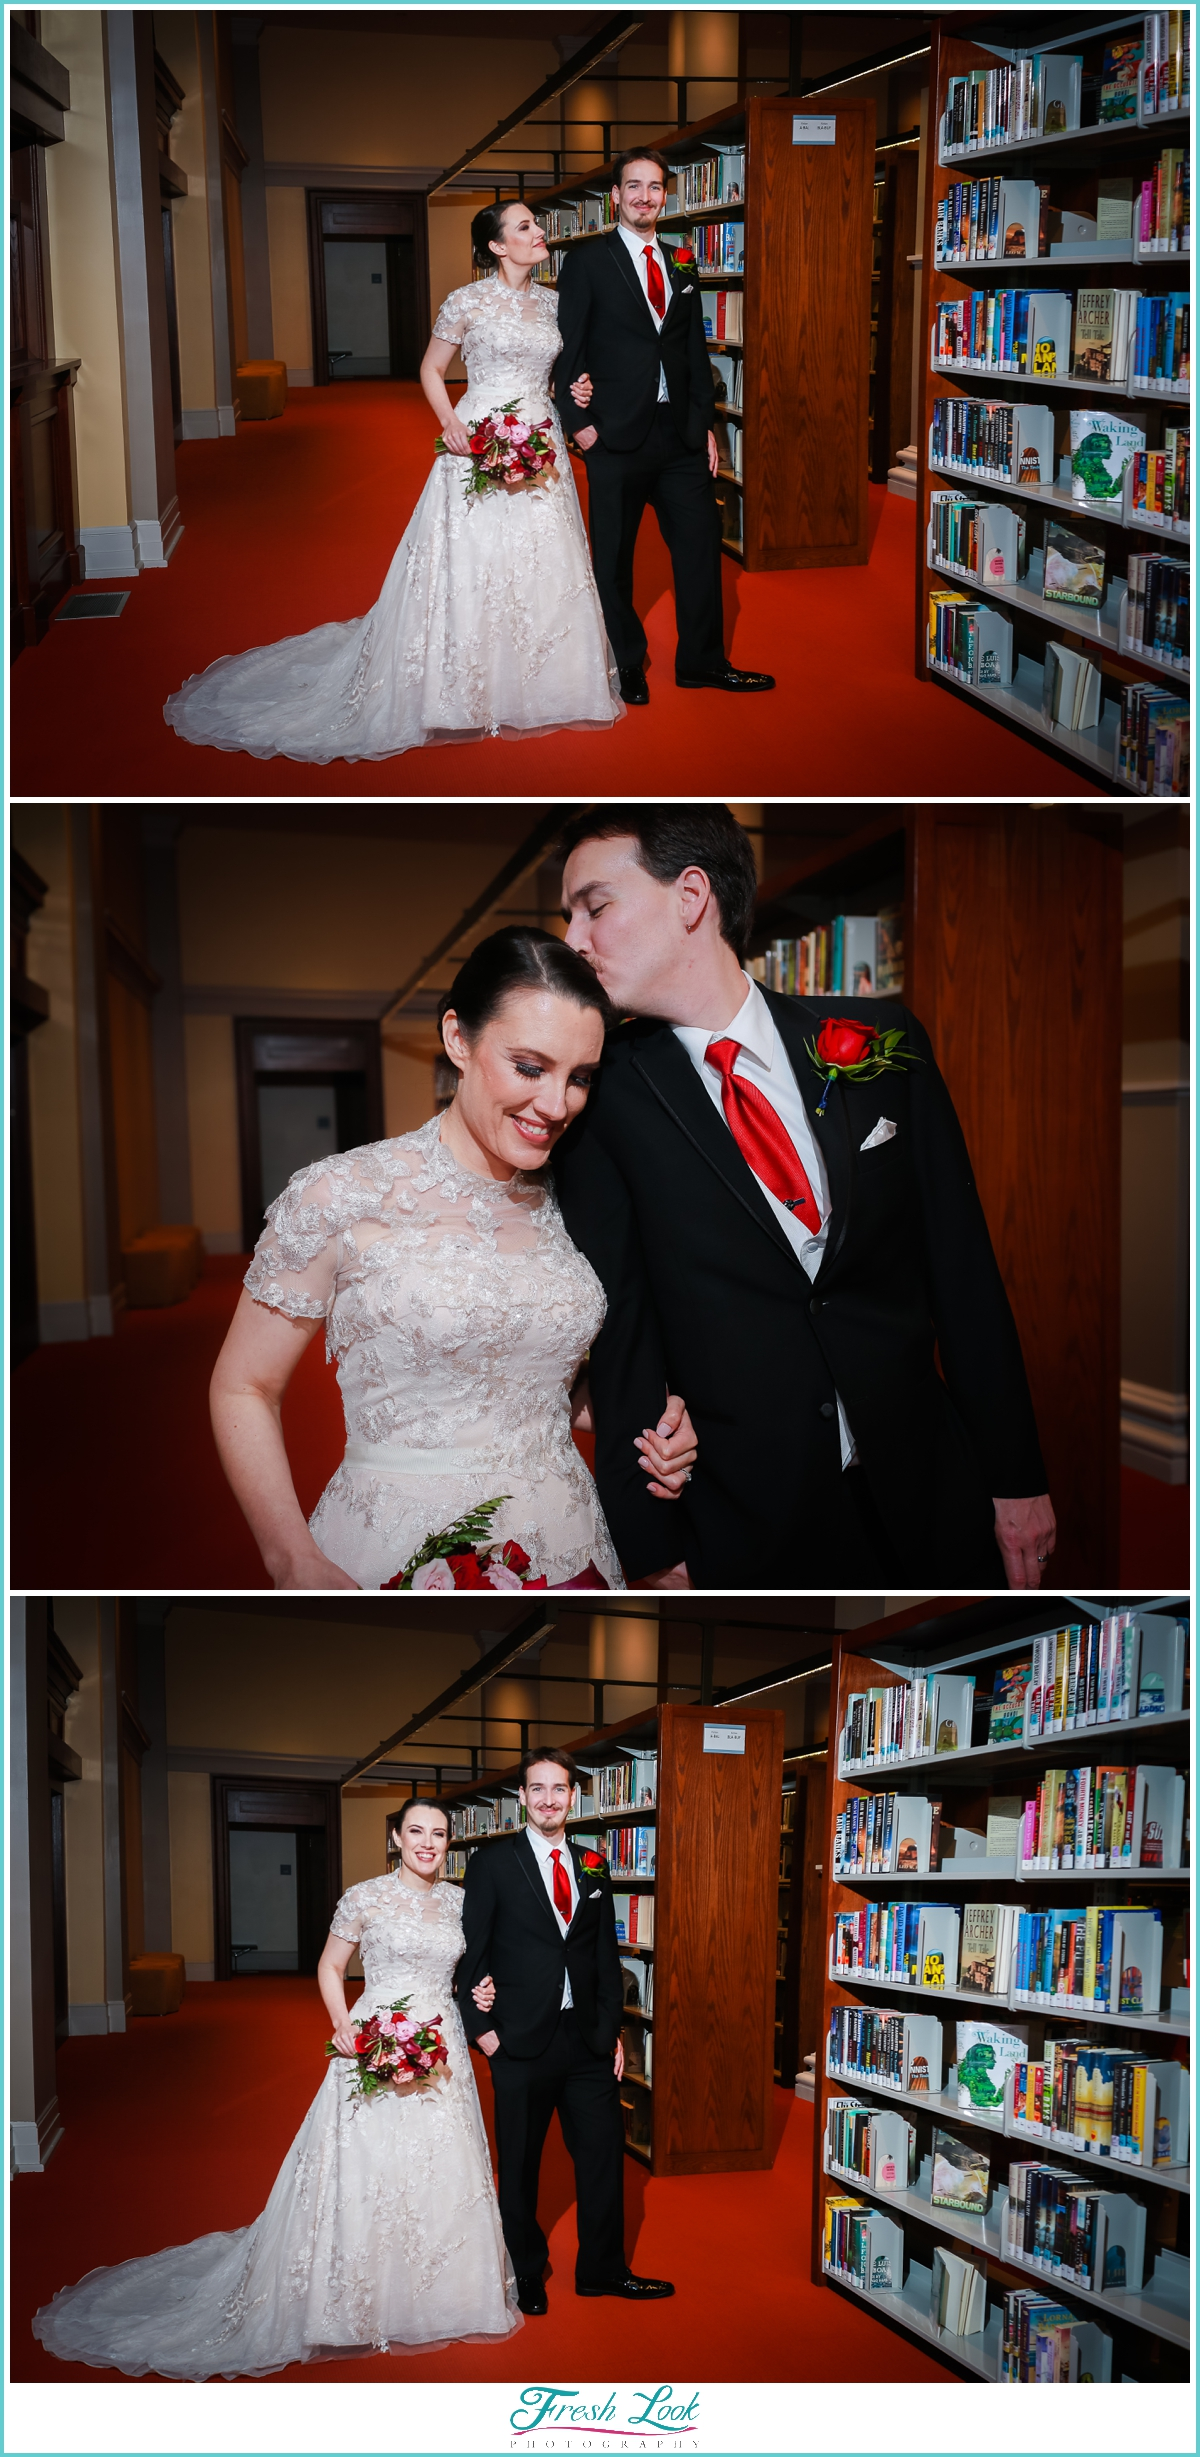 bride and groom portraits in library shelves